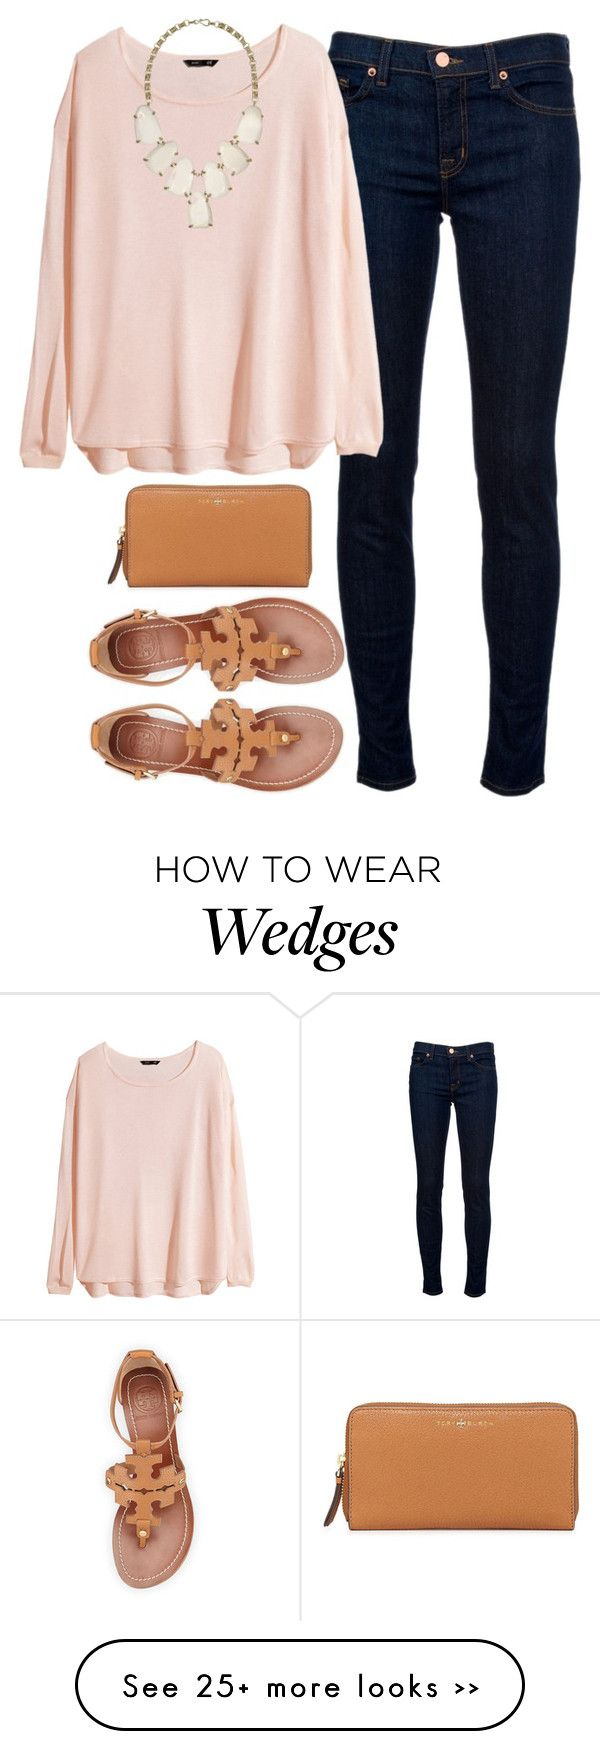 """sweater & sandals"" by tabooty on Polyvore featuring J Brand, H&M, Kendra Scott and Tory Burch"